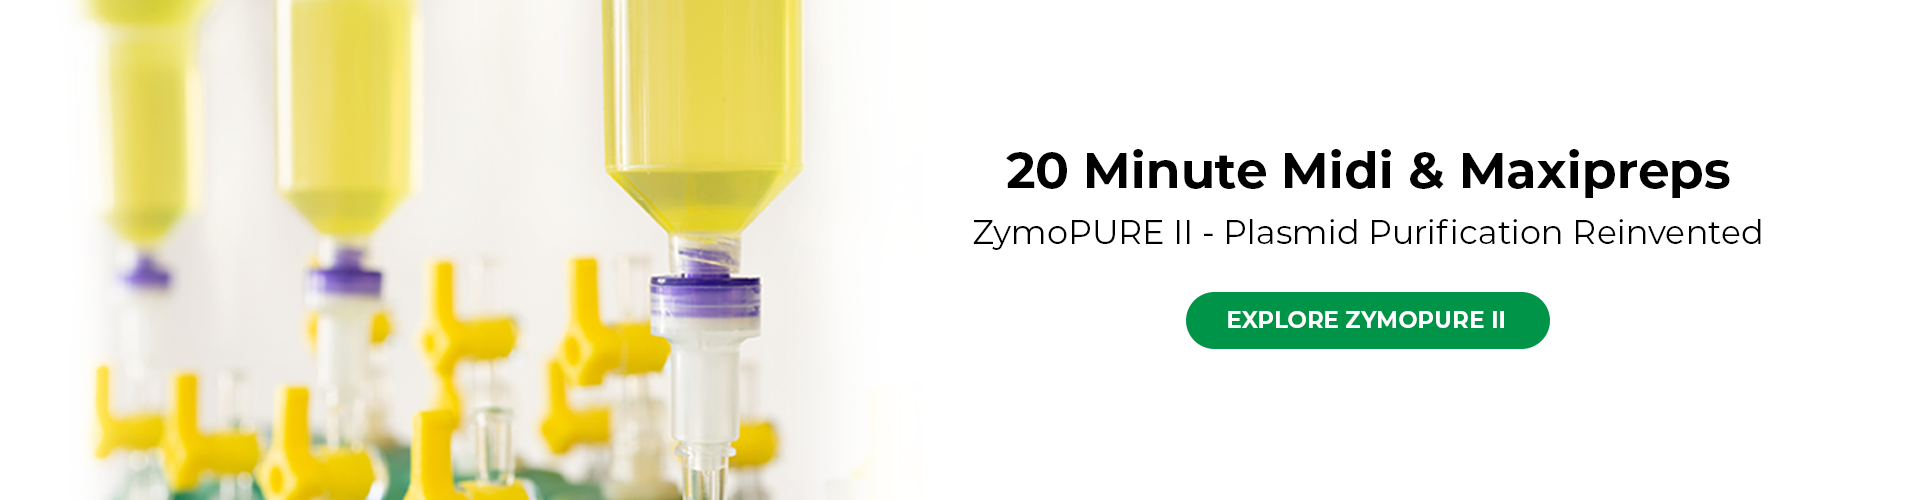 homepage banner for the ZymoPURE II landing page